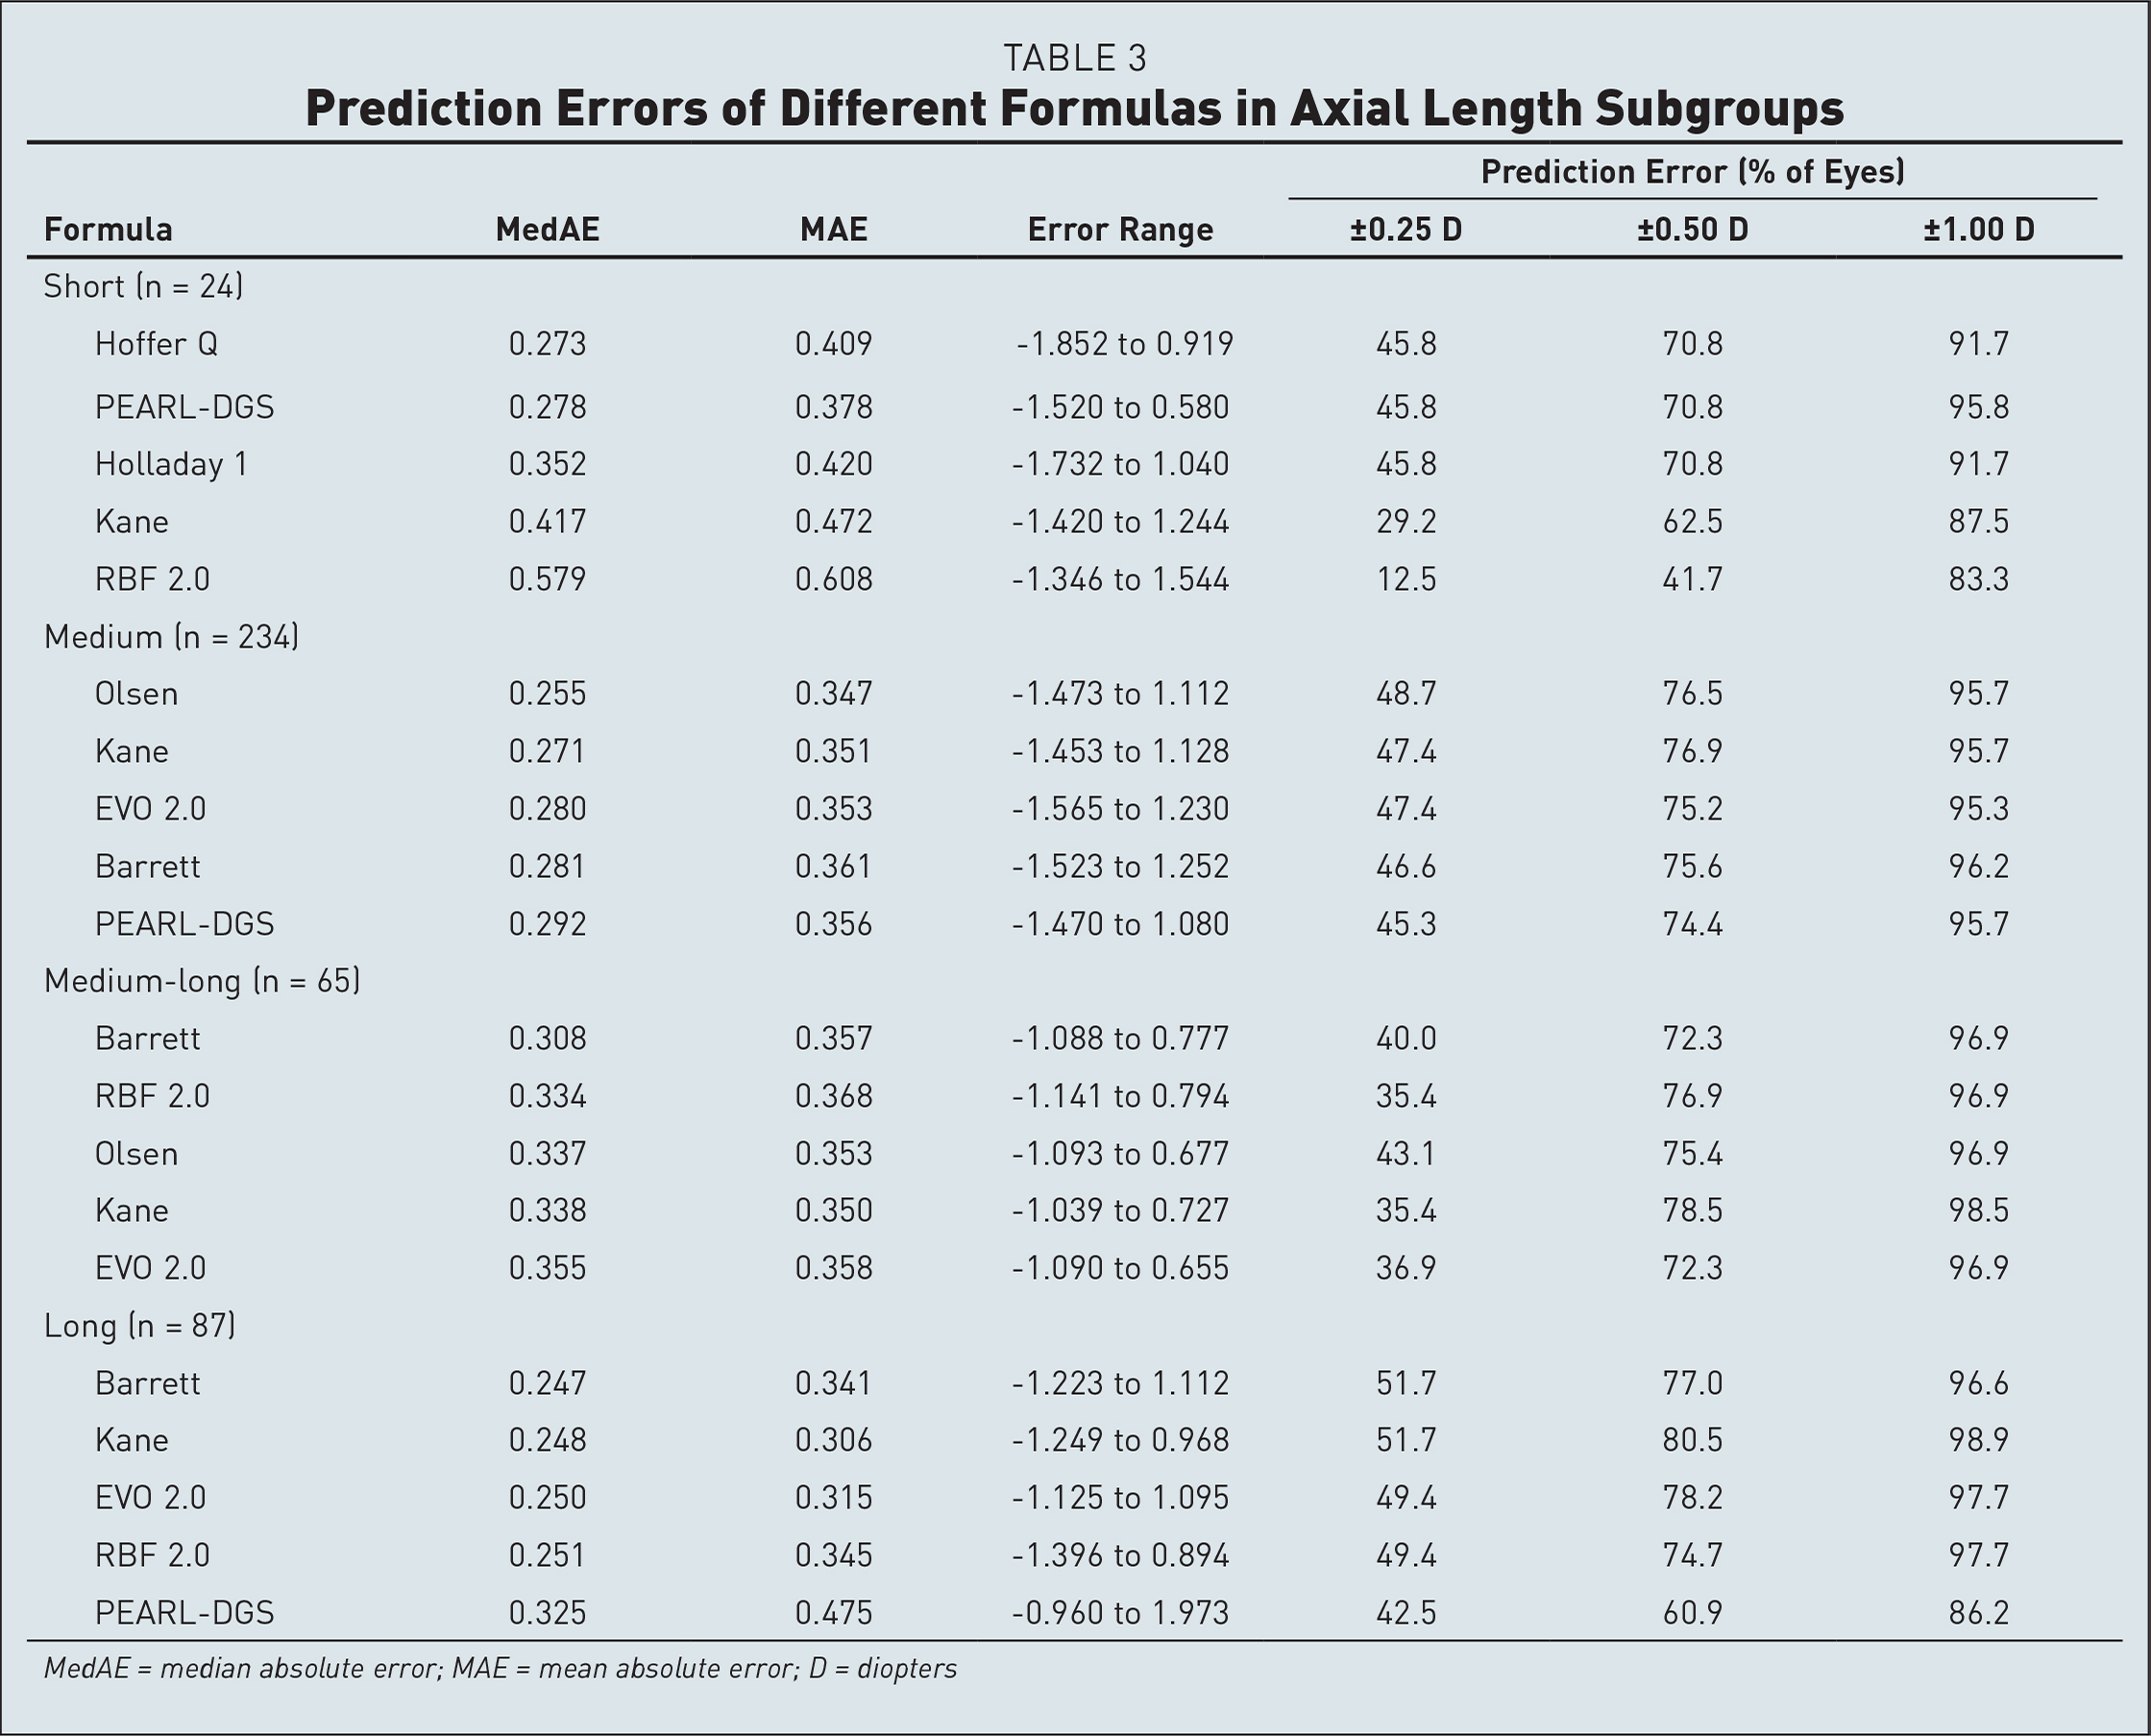 Prediction Errors of Different Formulas in Axial Length Subgroups